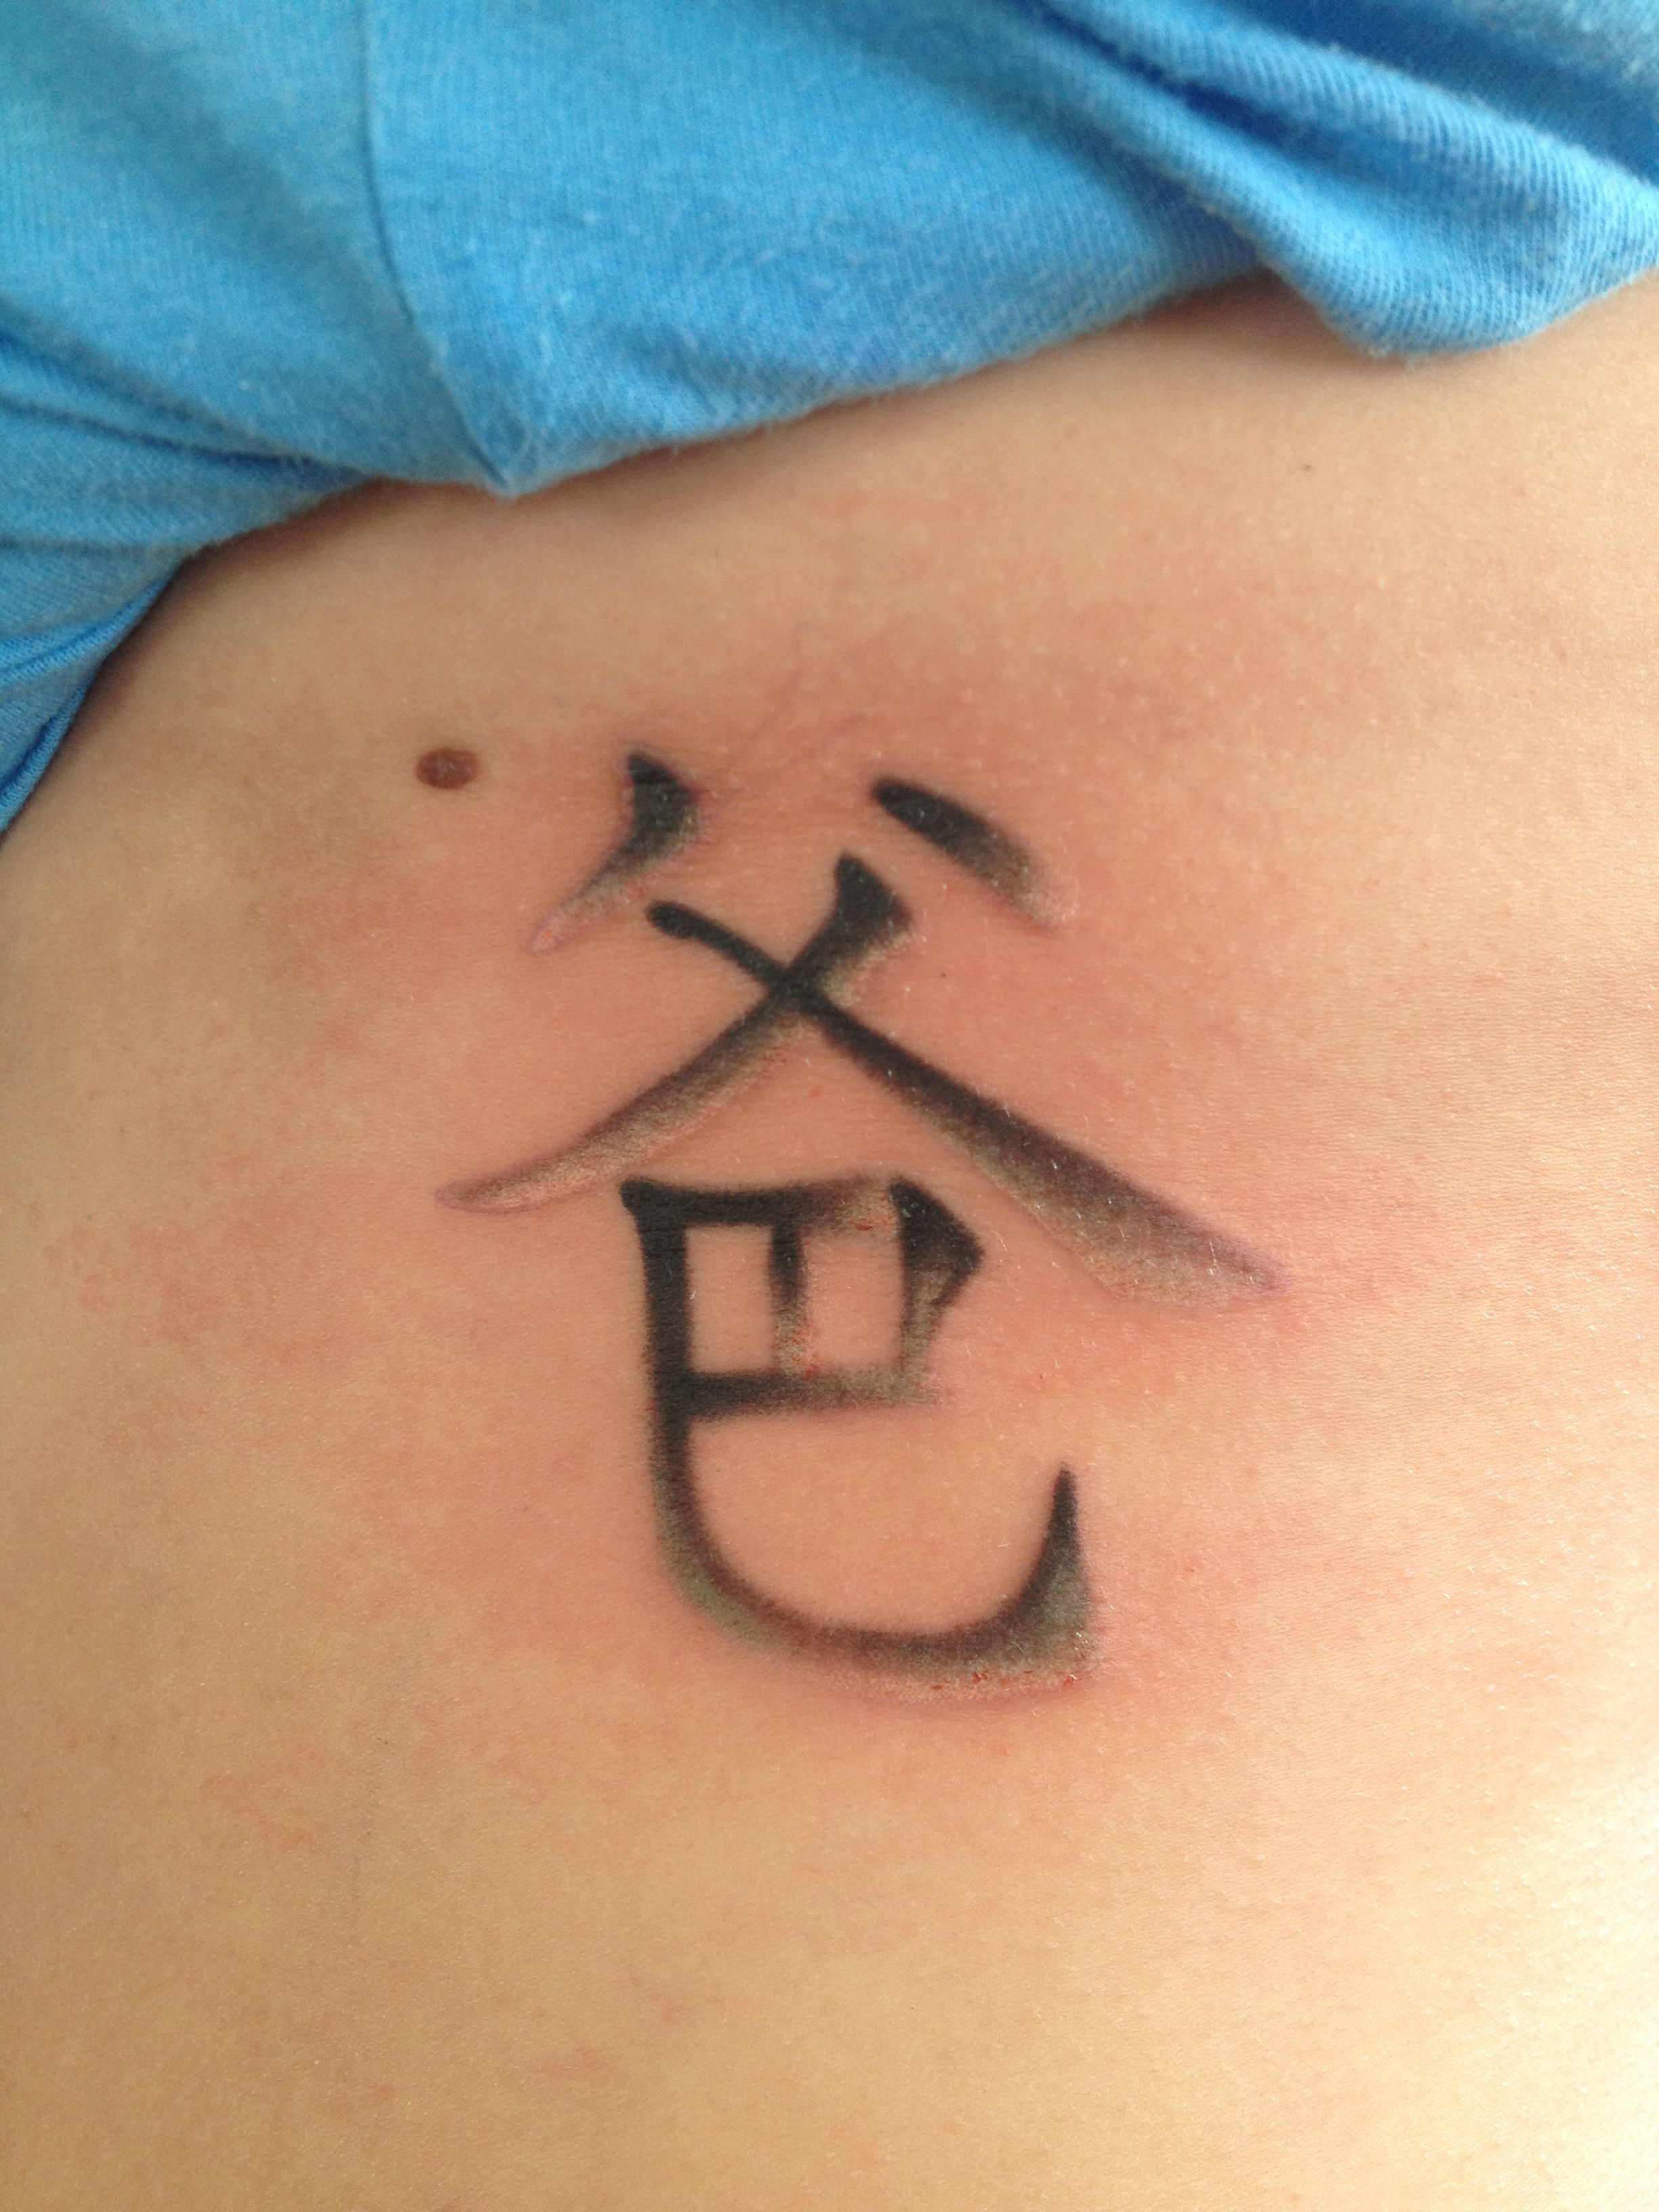 My rib tattoo is a chinese symbol for dad i love my dad to pieces my rib tattoo is a chinese symbol for dad i love my dad to pieces buycottarizona Image collections